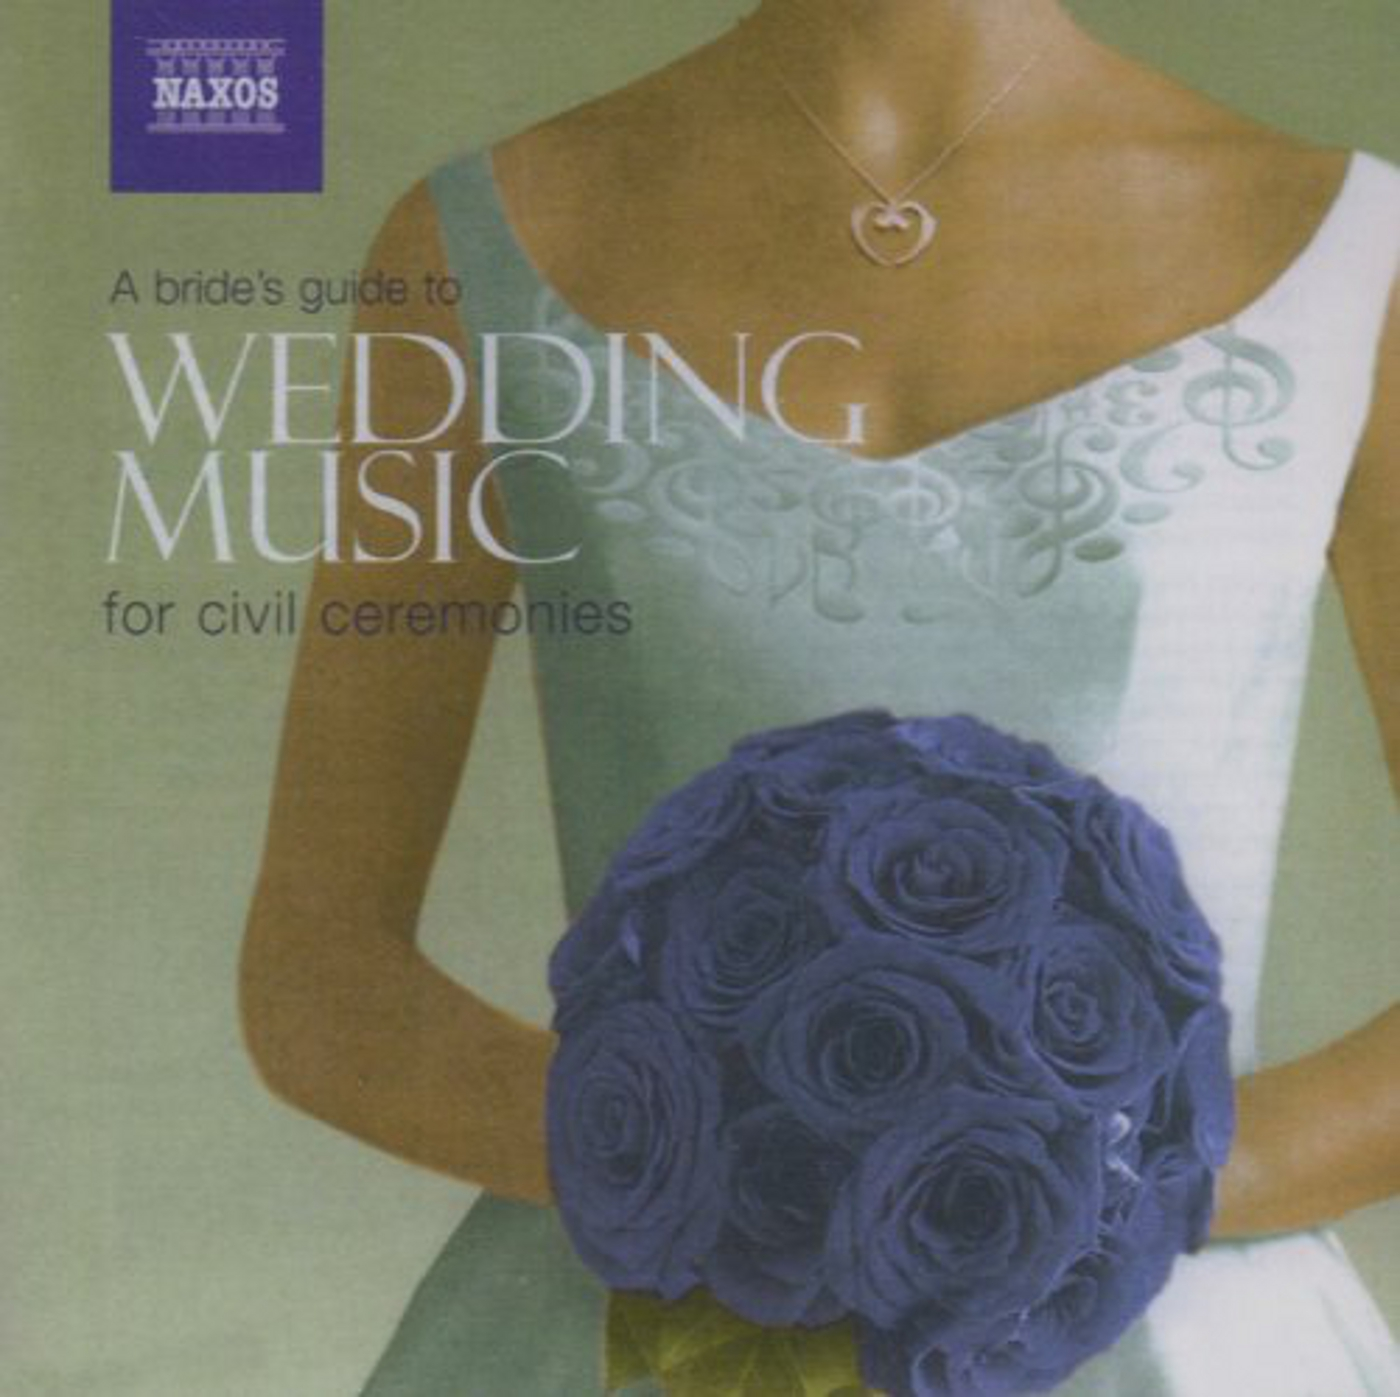 A Bride's Guide To Wedding Music For Civil